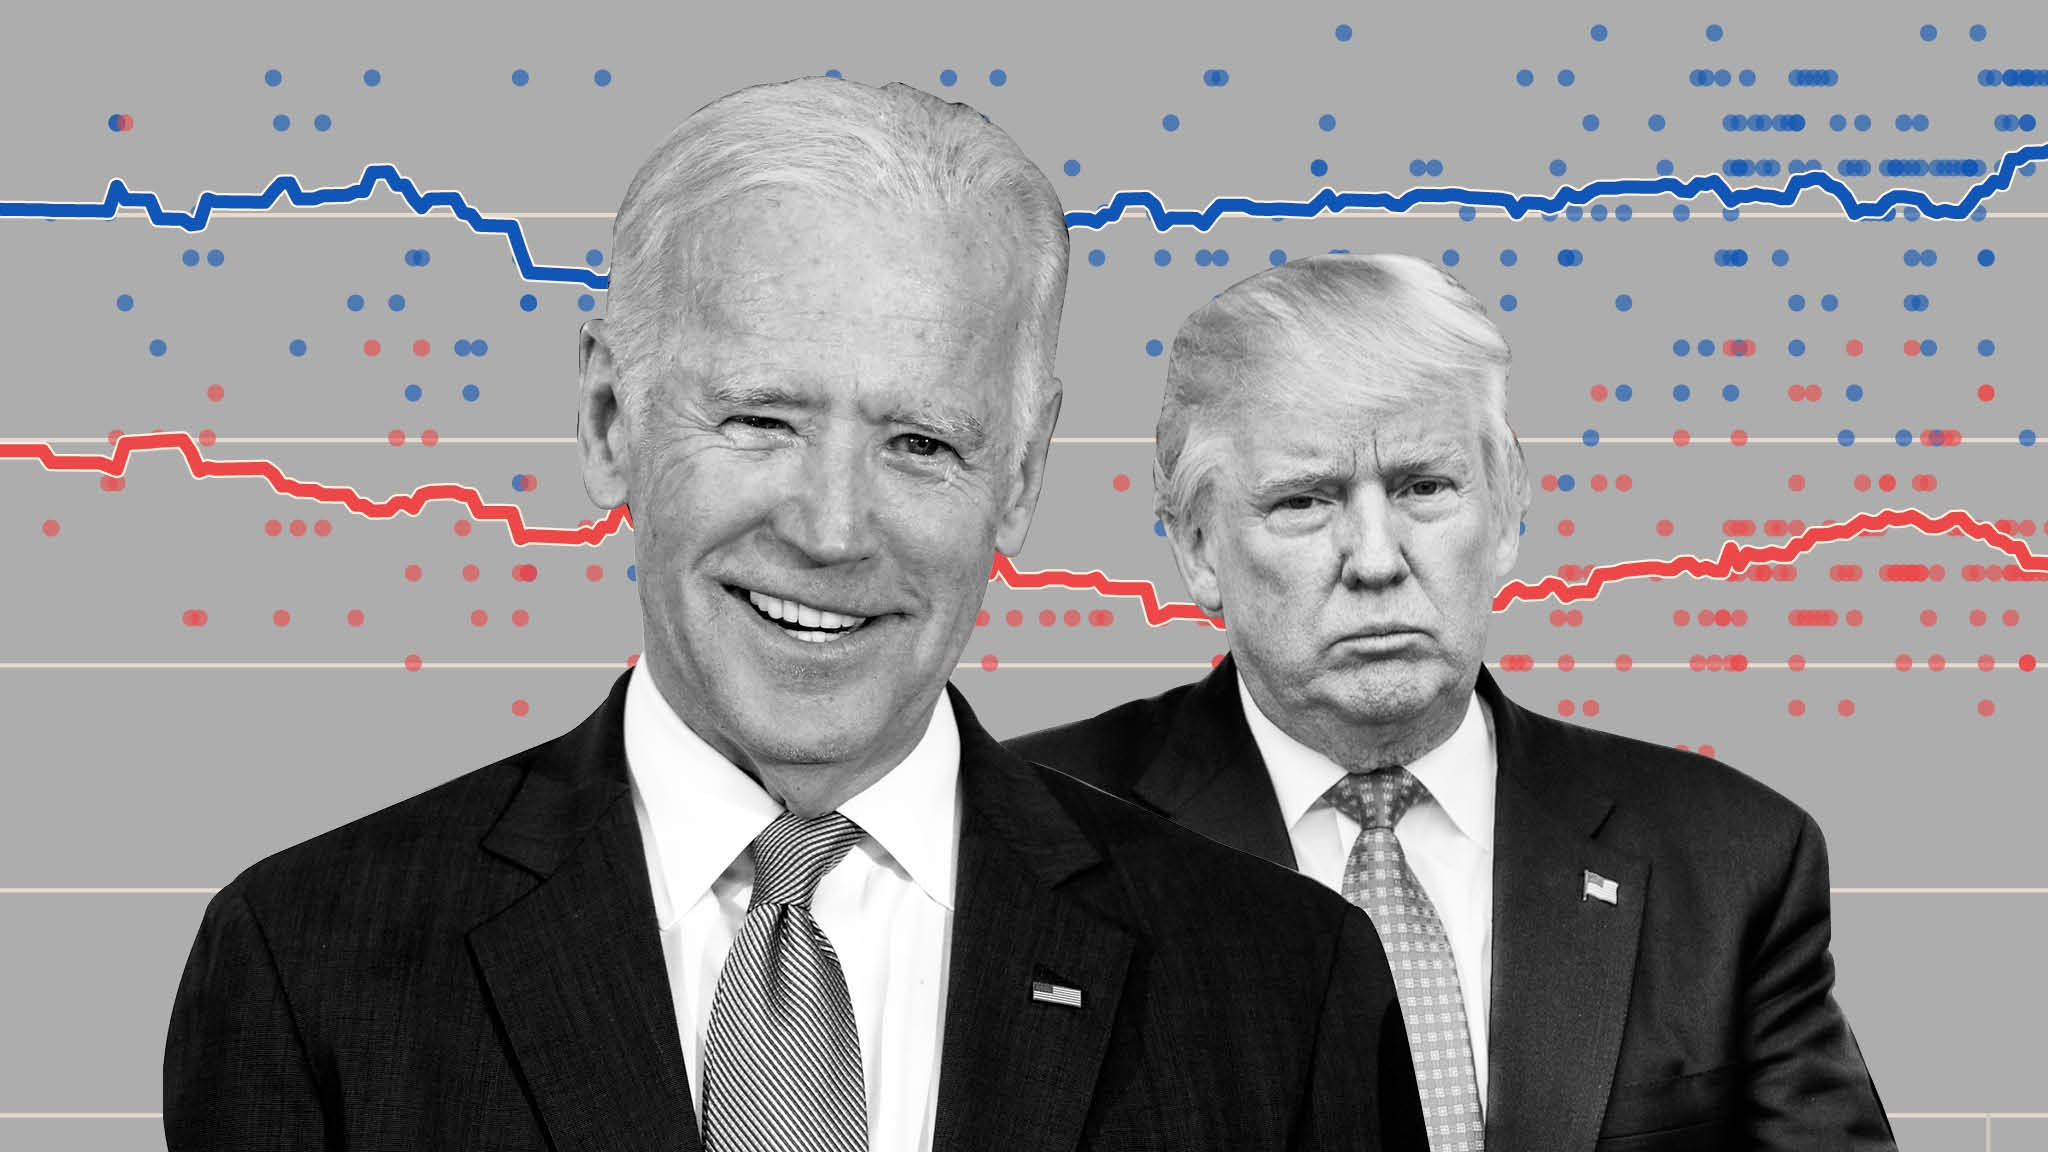 US election: is Biden on course for a blowout victory? | Financial Times